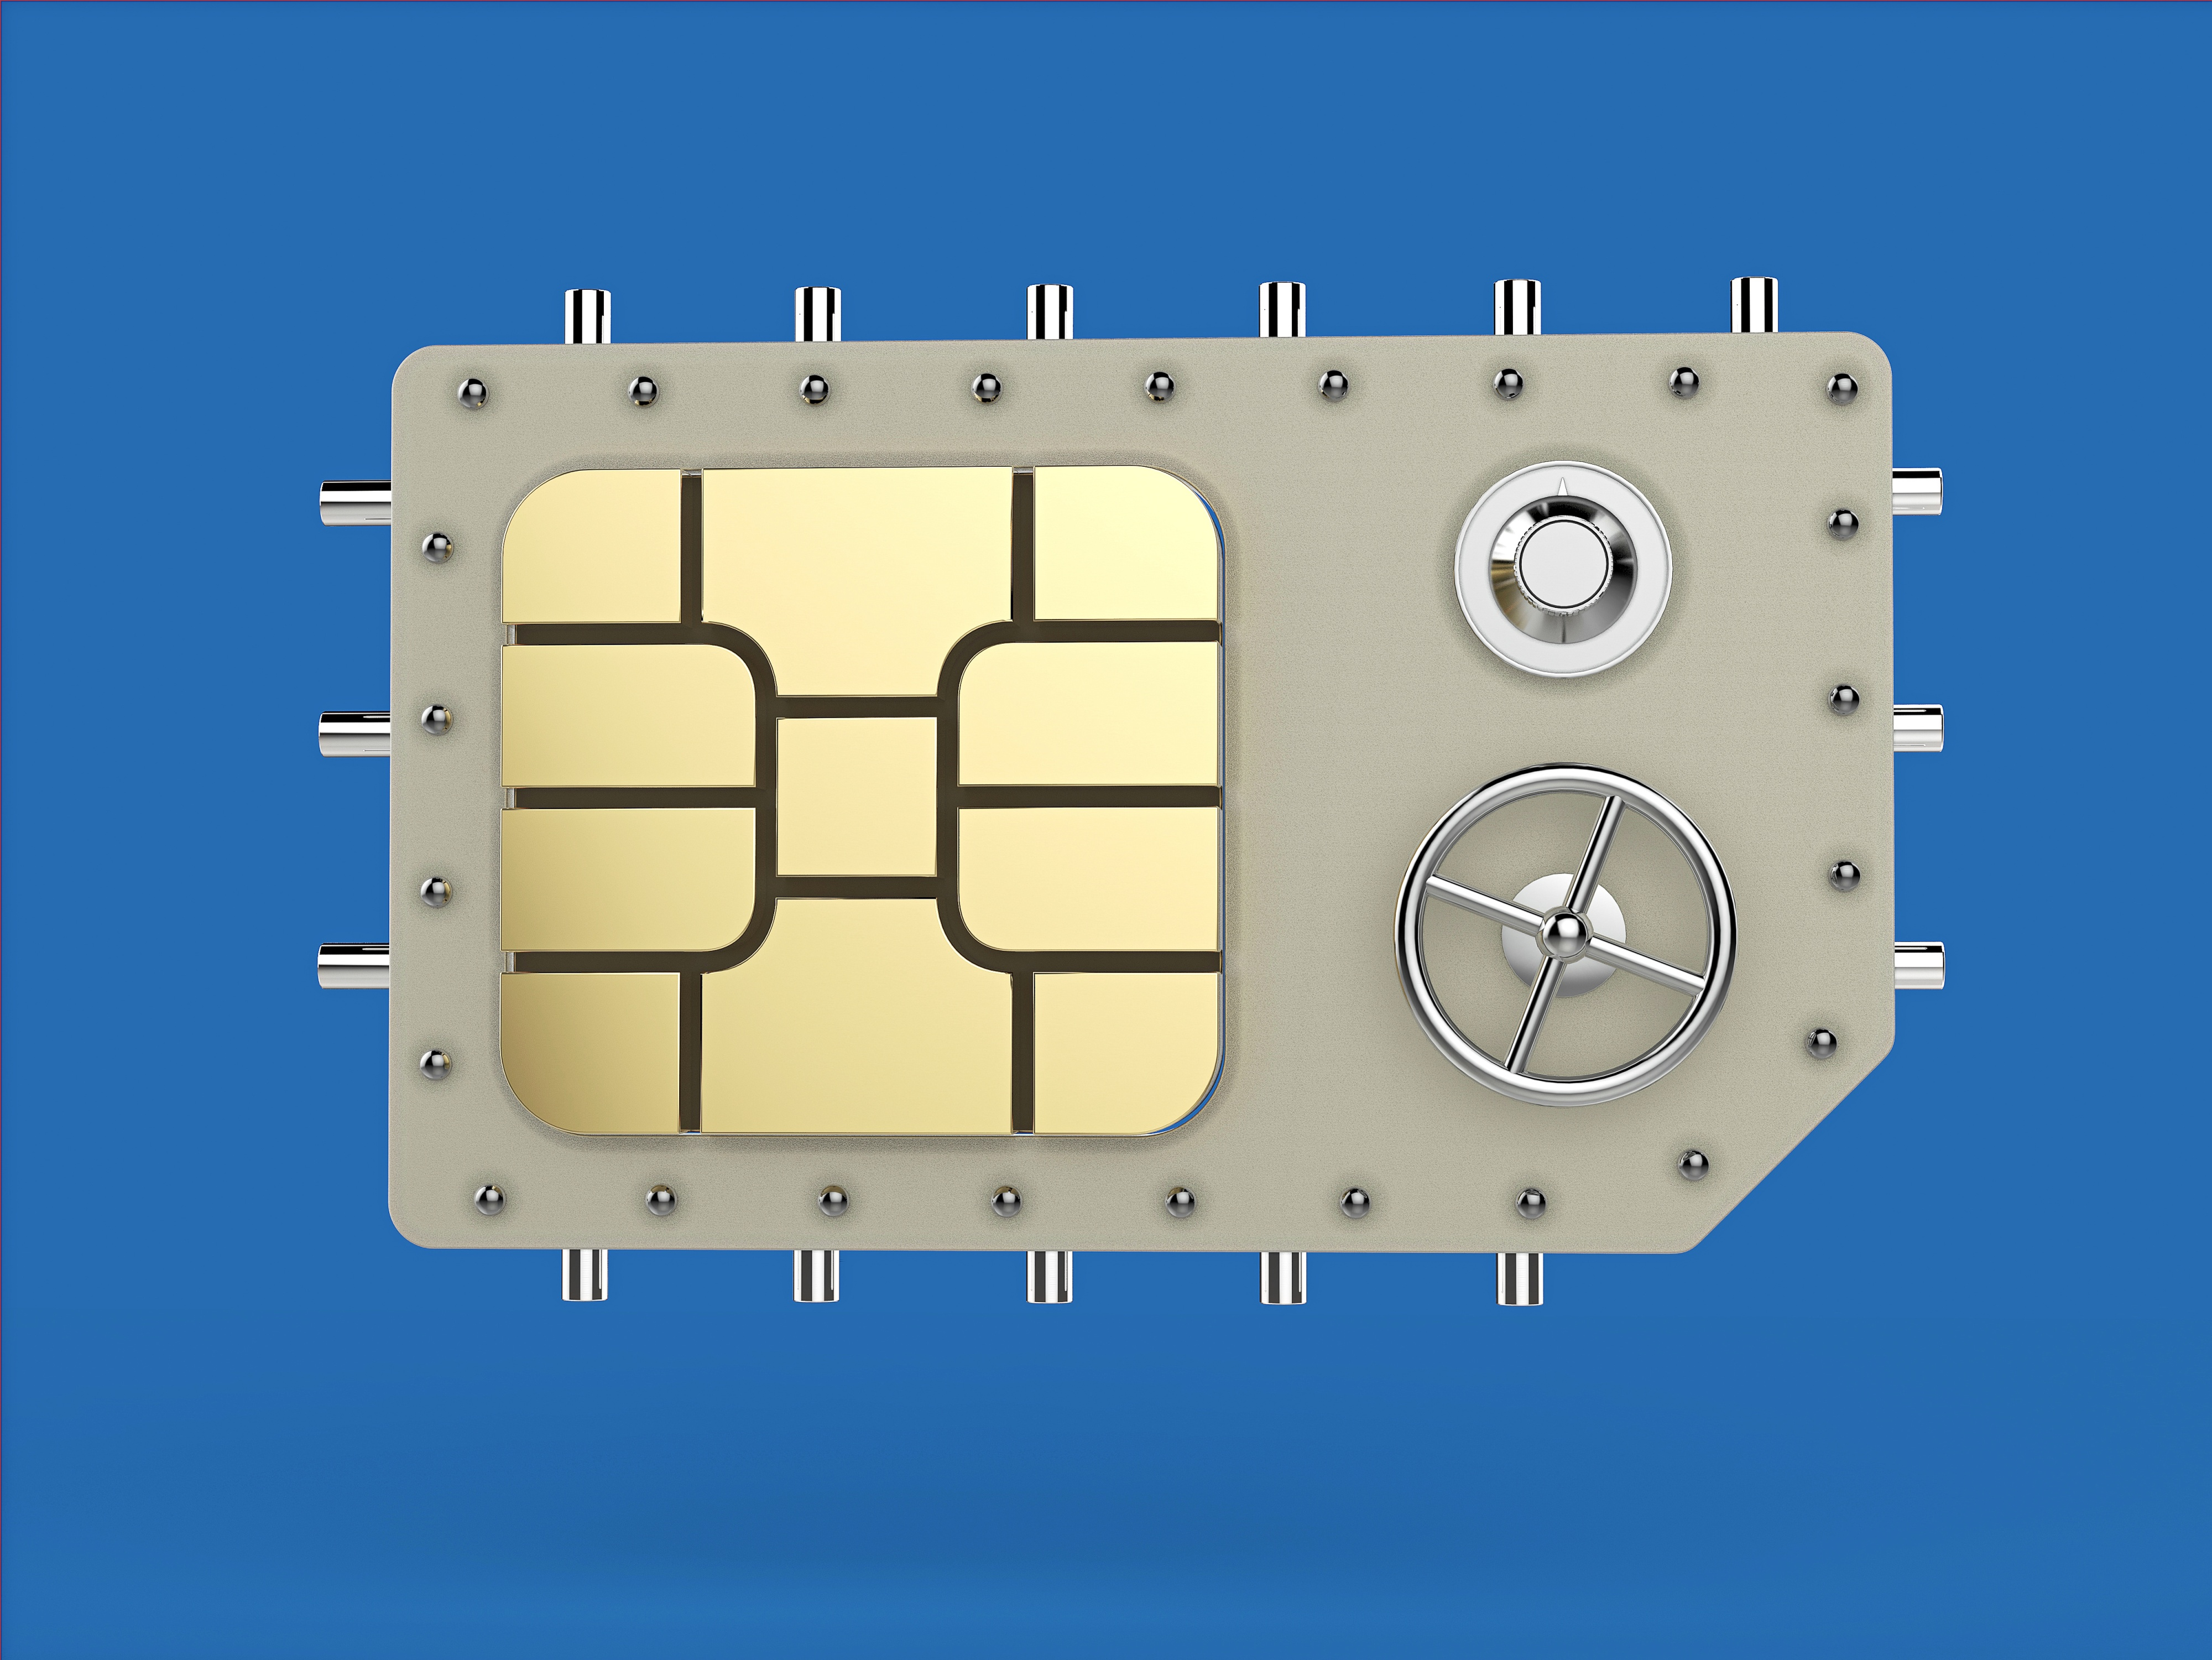 Sim Card with Safe Image and Wheel